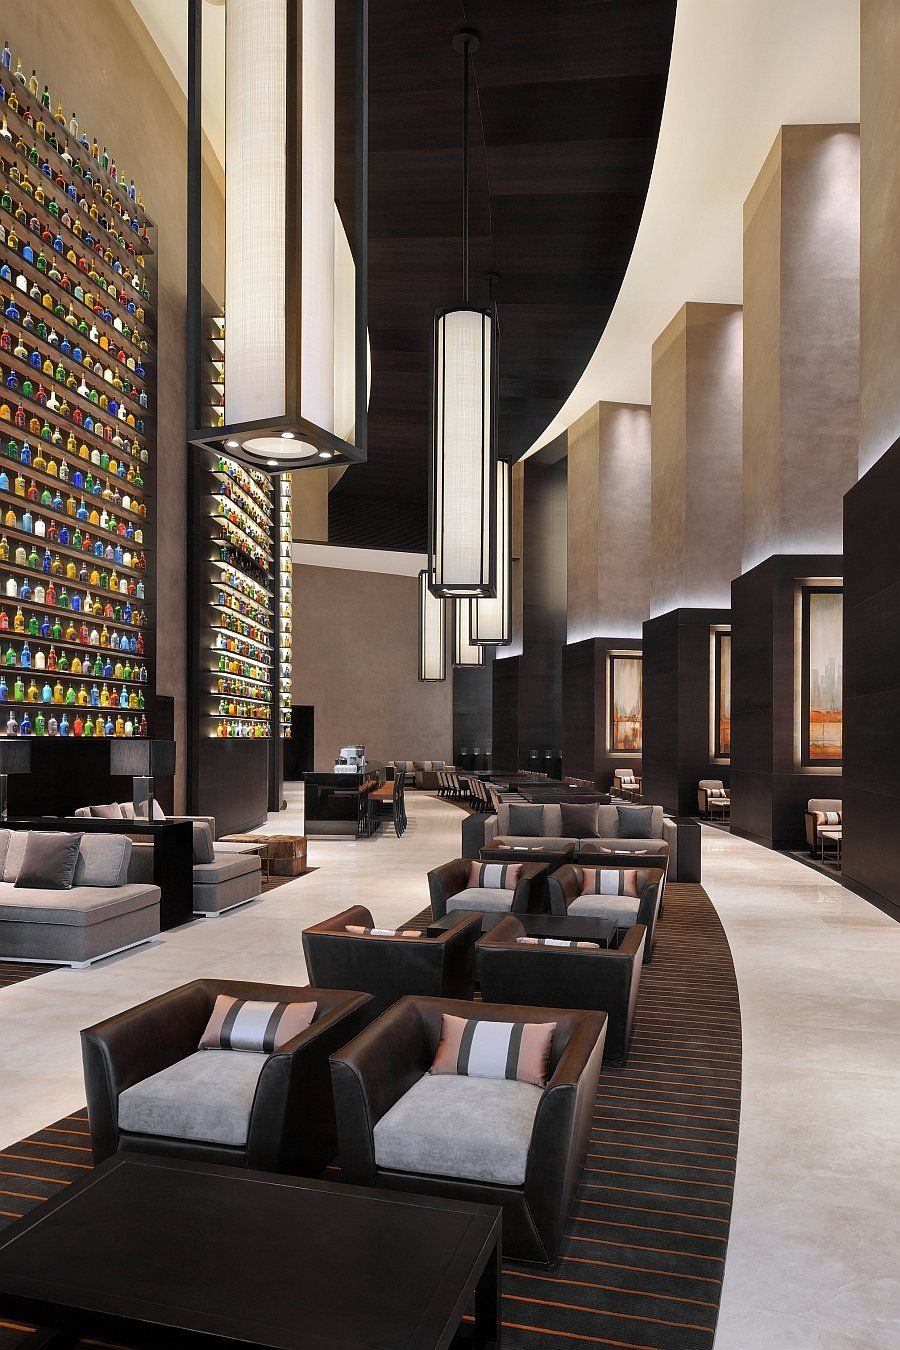 Jw marriott marquis hotel dubai hotel pinterest for Design hotel dubai